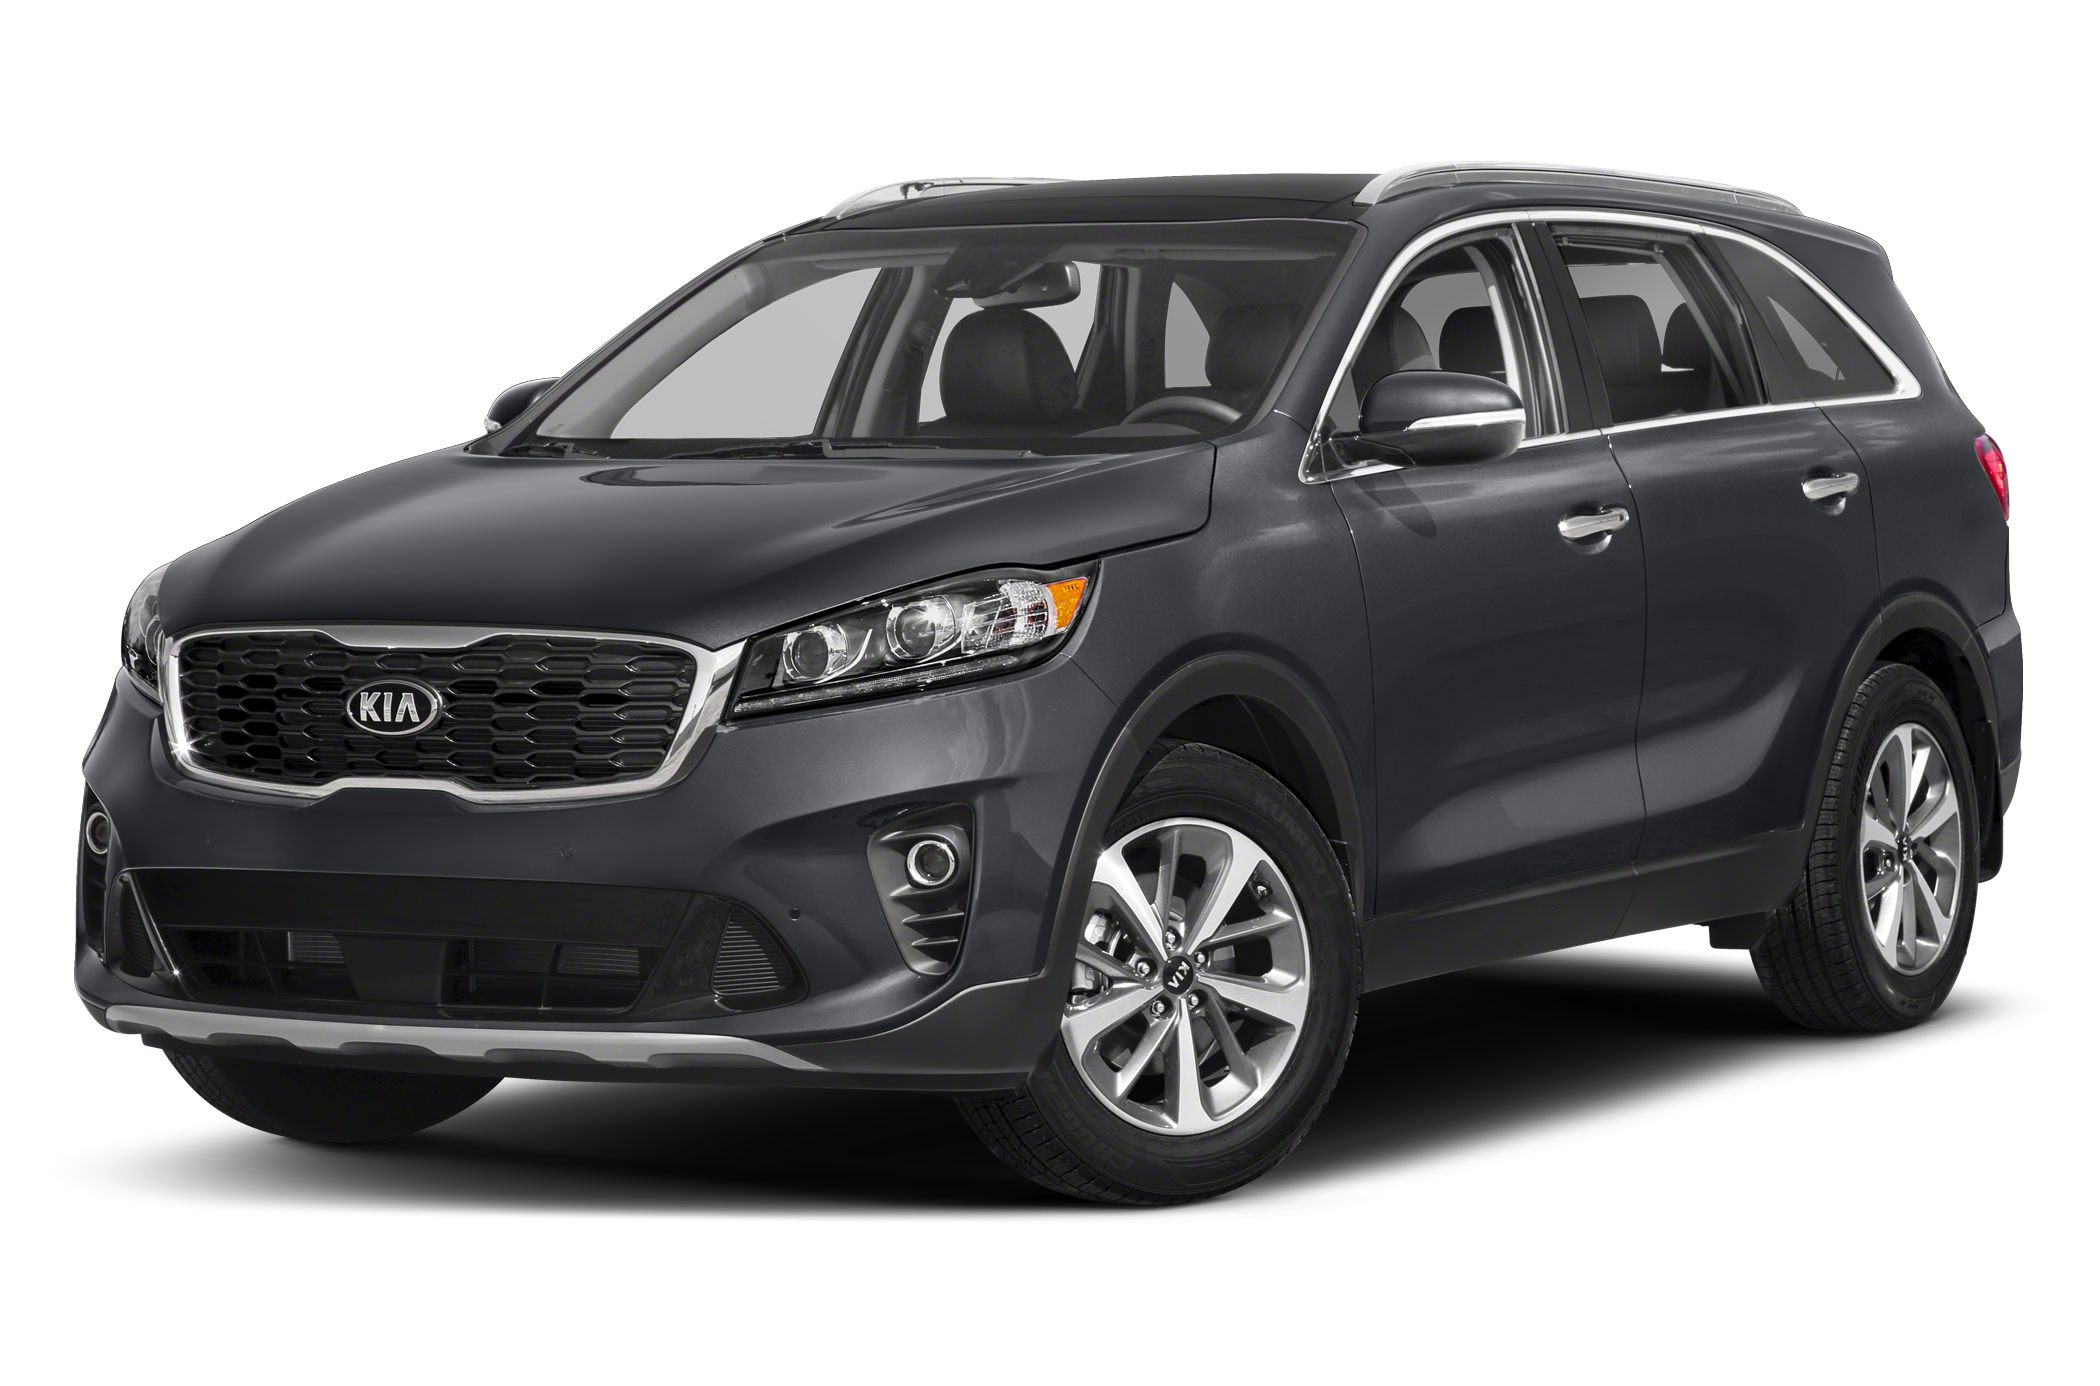 Cars for Sale by Budget Inspirational Cars for Sale at Bud Rent A Car Sales In norwalk Ca